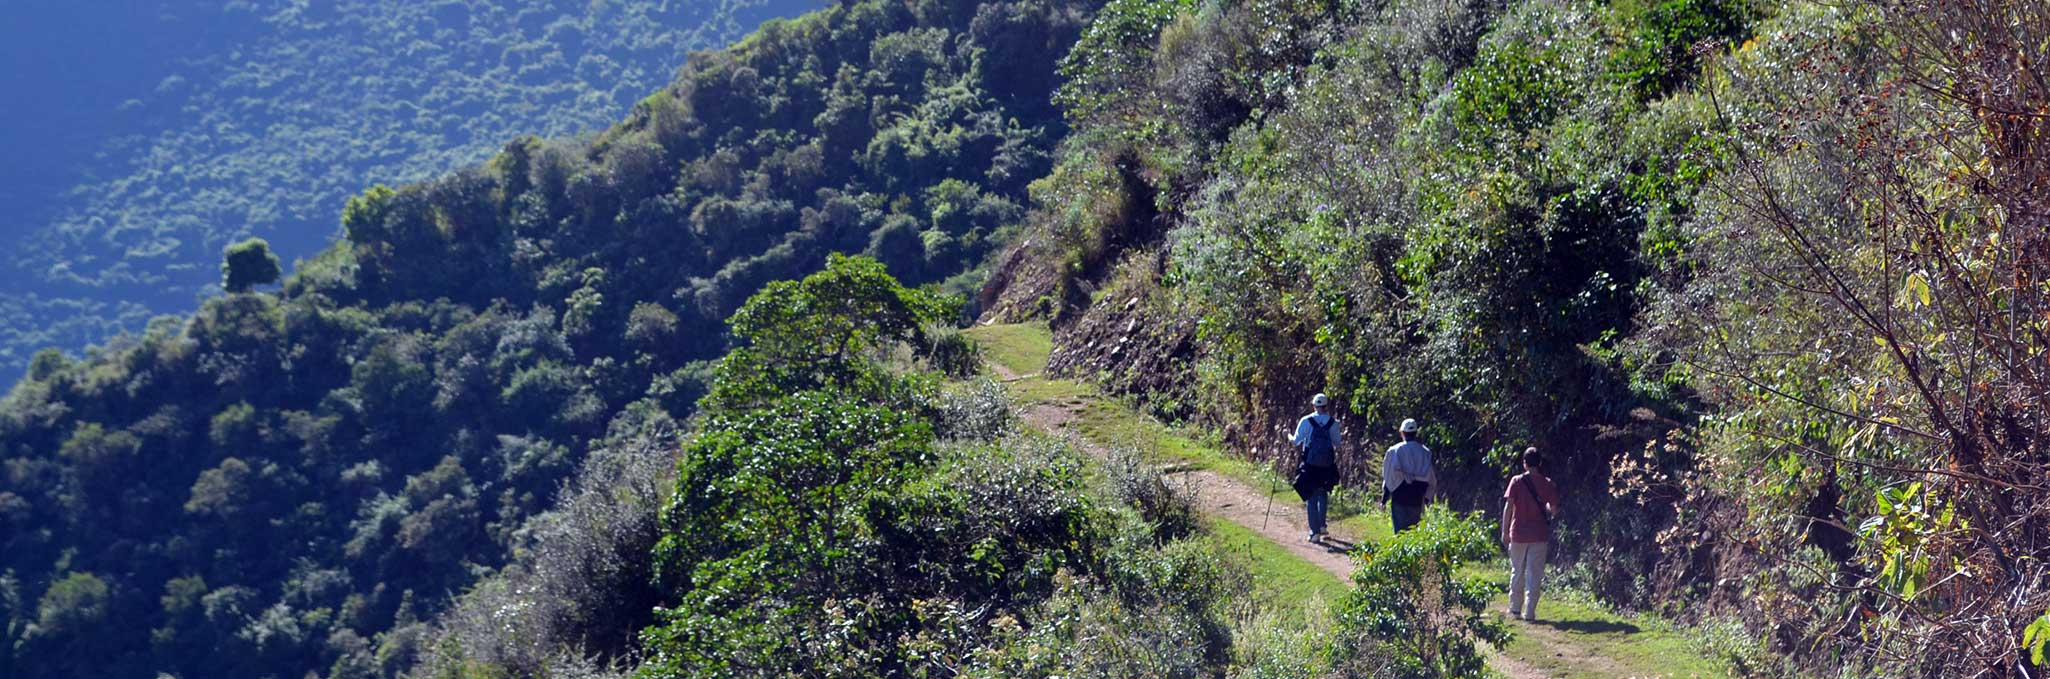 Choquequirao Trek to Machu Picchu in 8 days